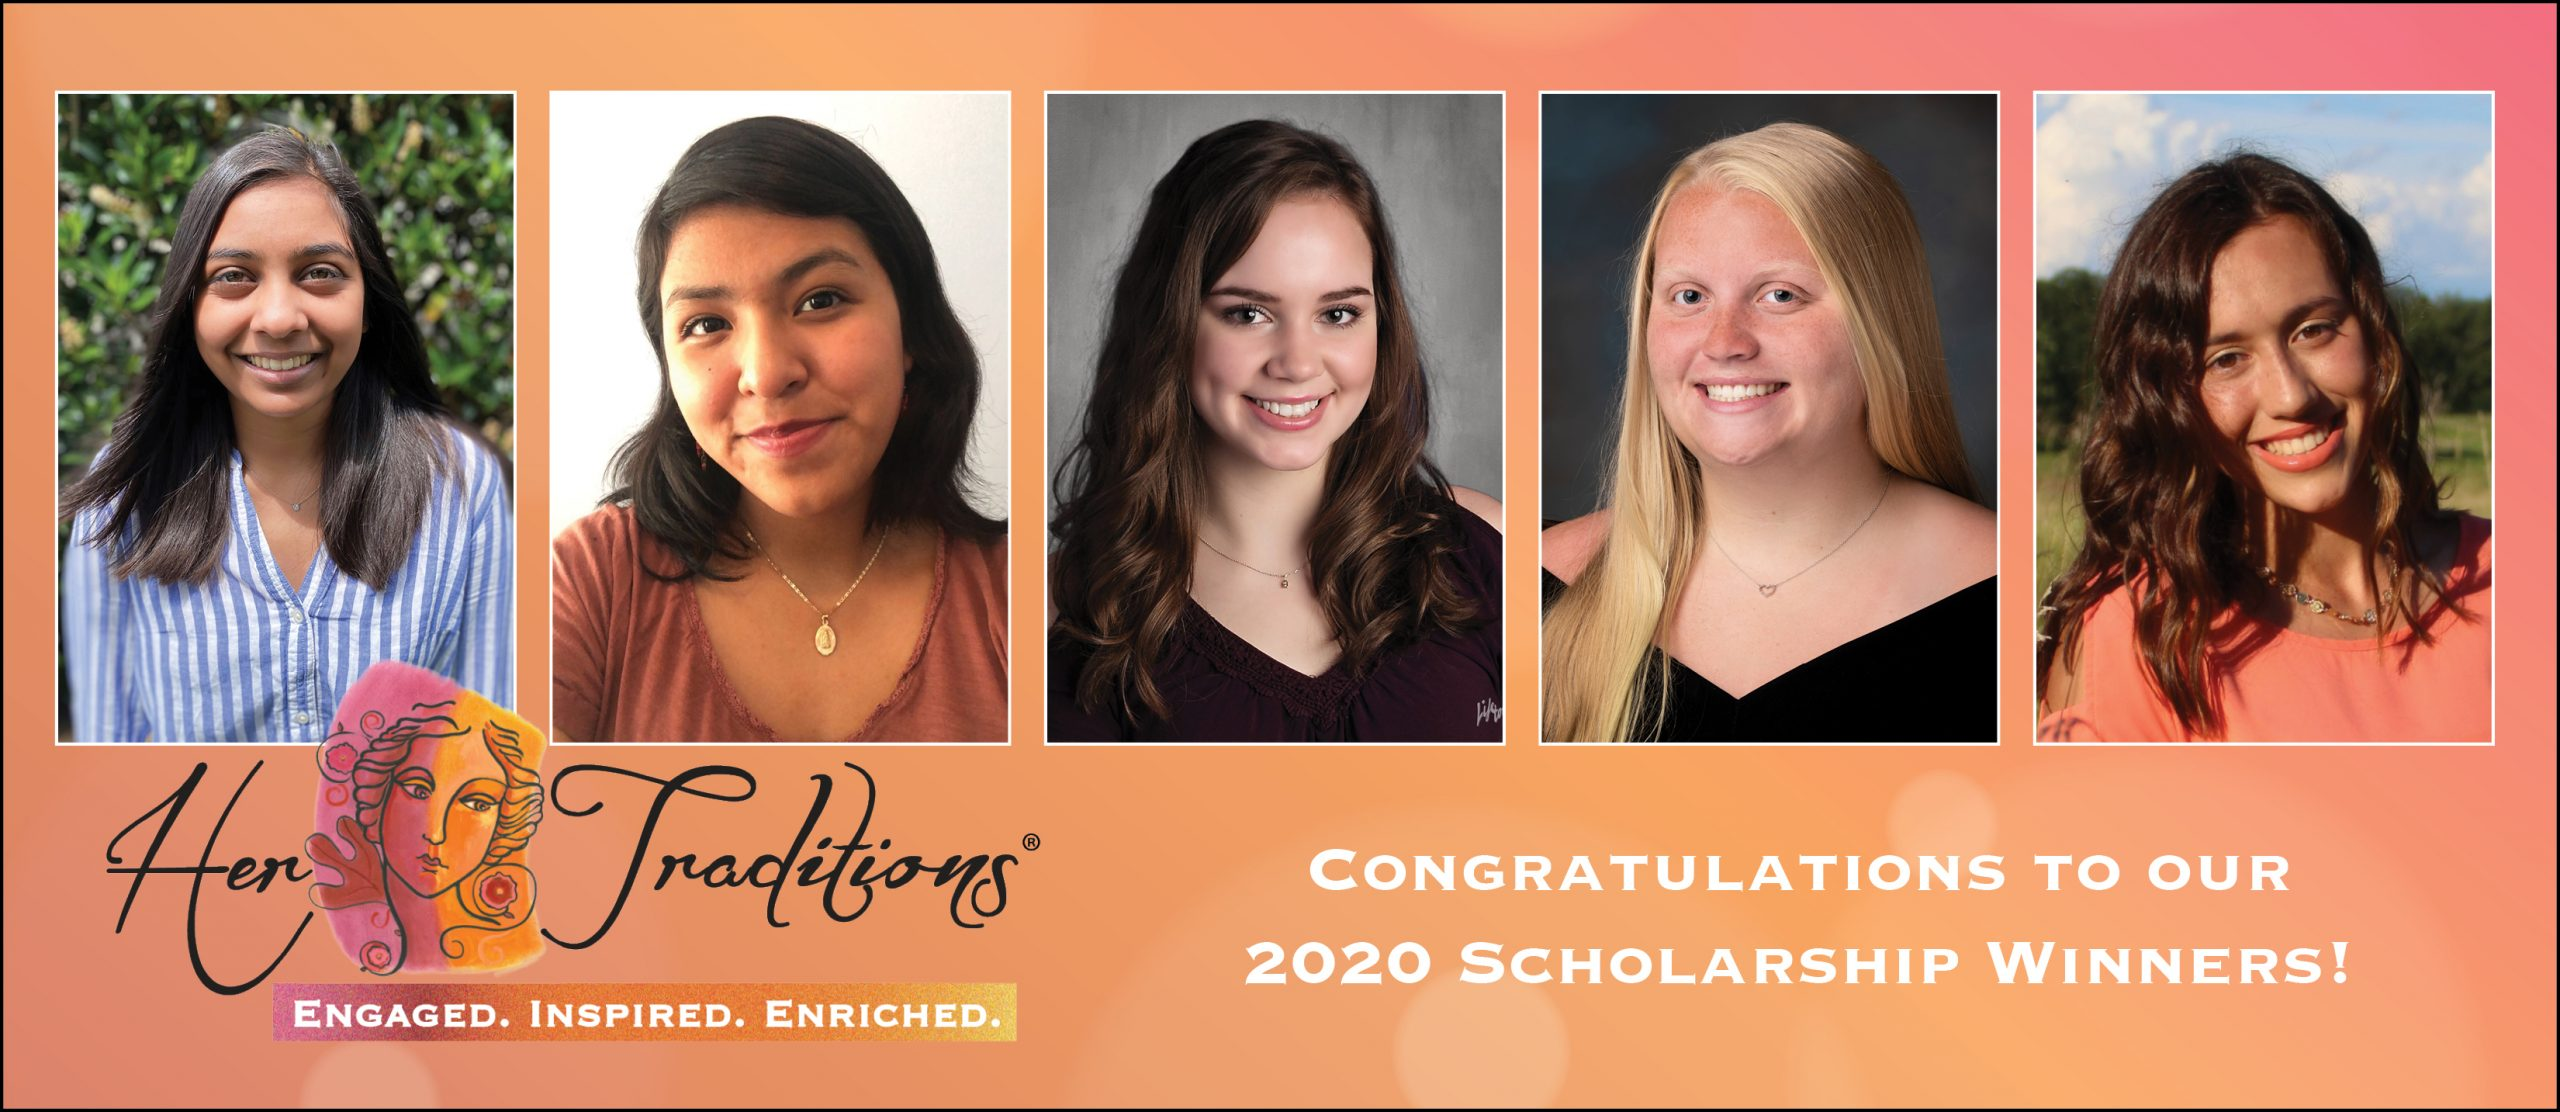 Pictured above (l to r): Amani Patel, Barbara Salinas, Ivy Snyder, Maleah Culp, and Shyanne Fleming.